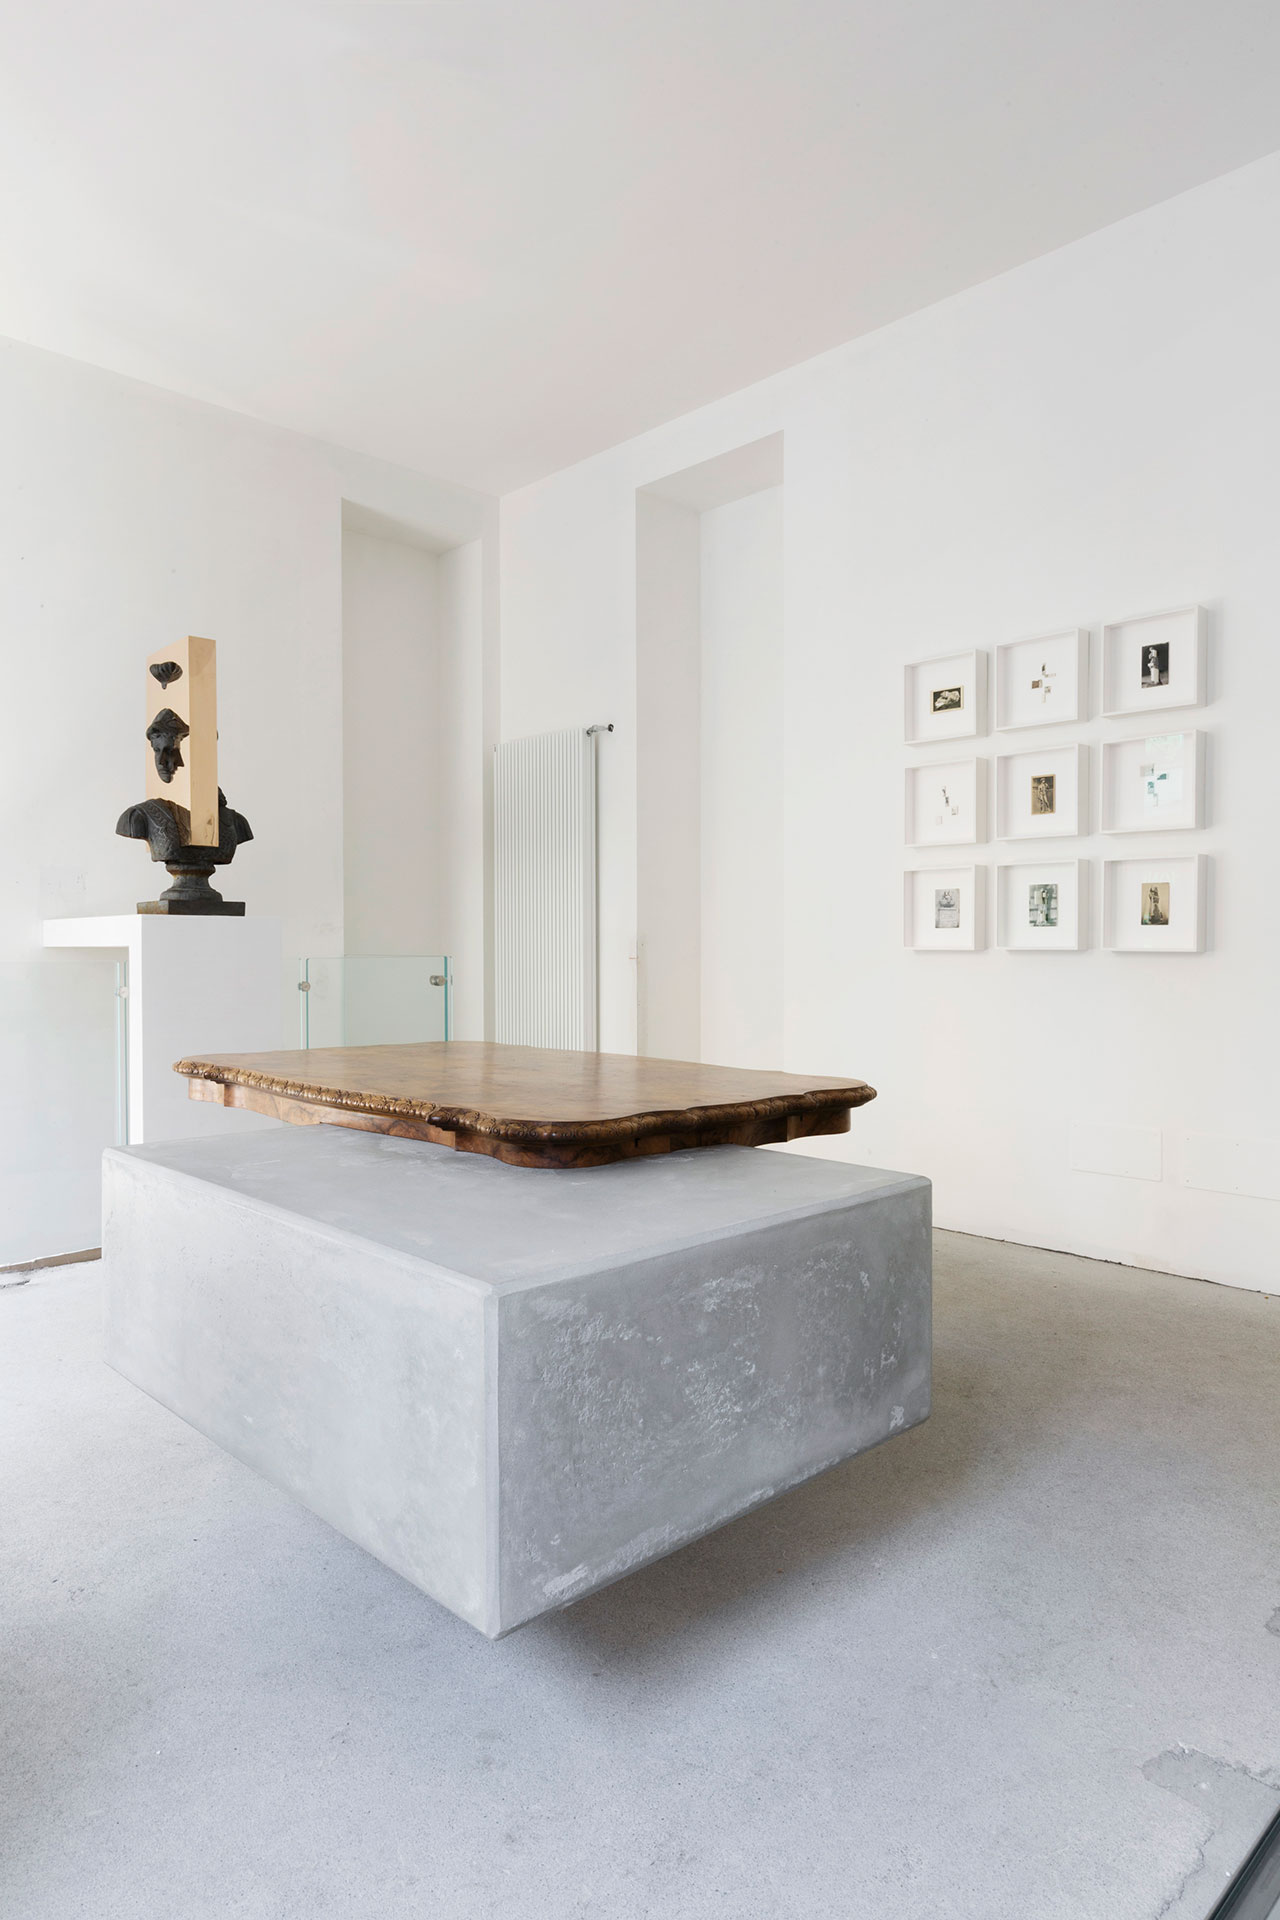 "Nucleo (Piergiorgio Robino + Marzia Ricci), ""Boolean"" And  (Table), 2017. Concrete, vintage furniture, 204 x 142 x 80h cm. Unique piece. Photo by Studio Pepe Fotografia."